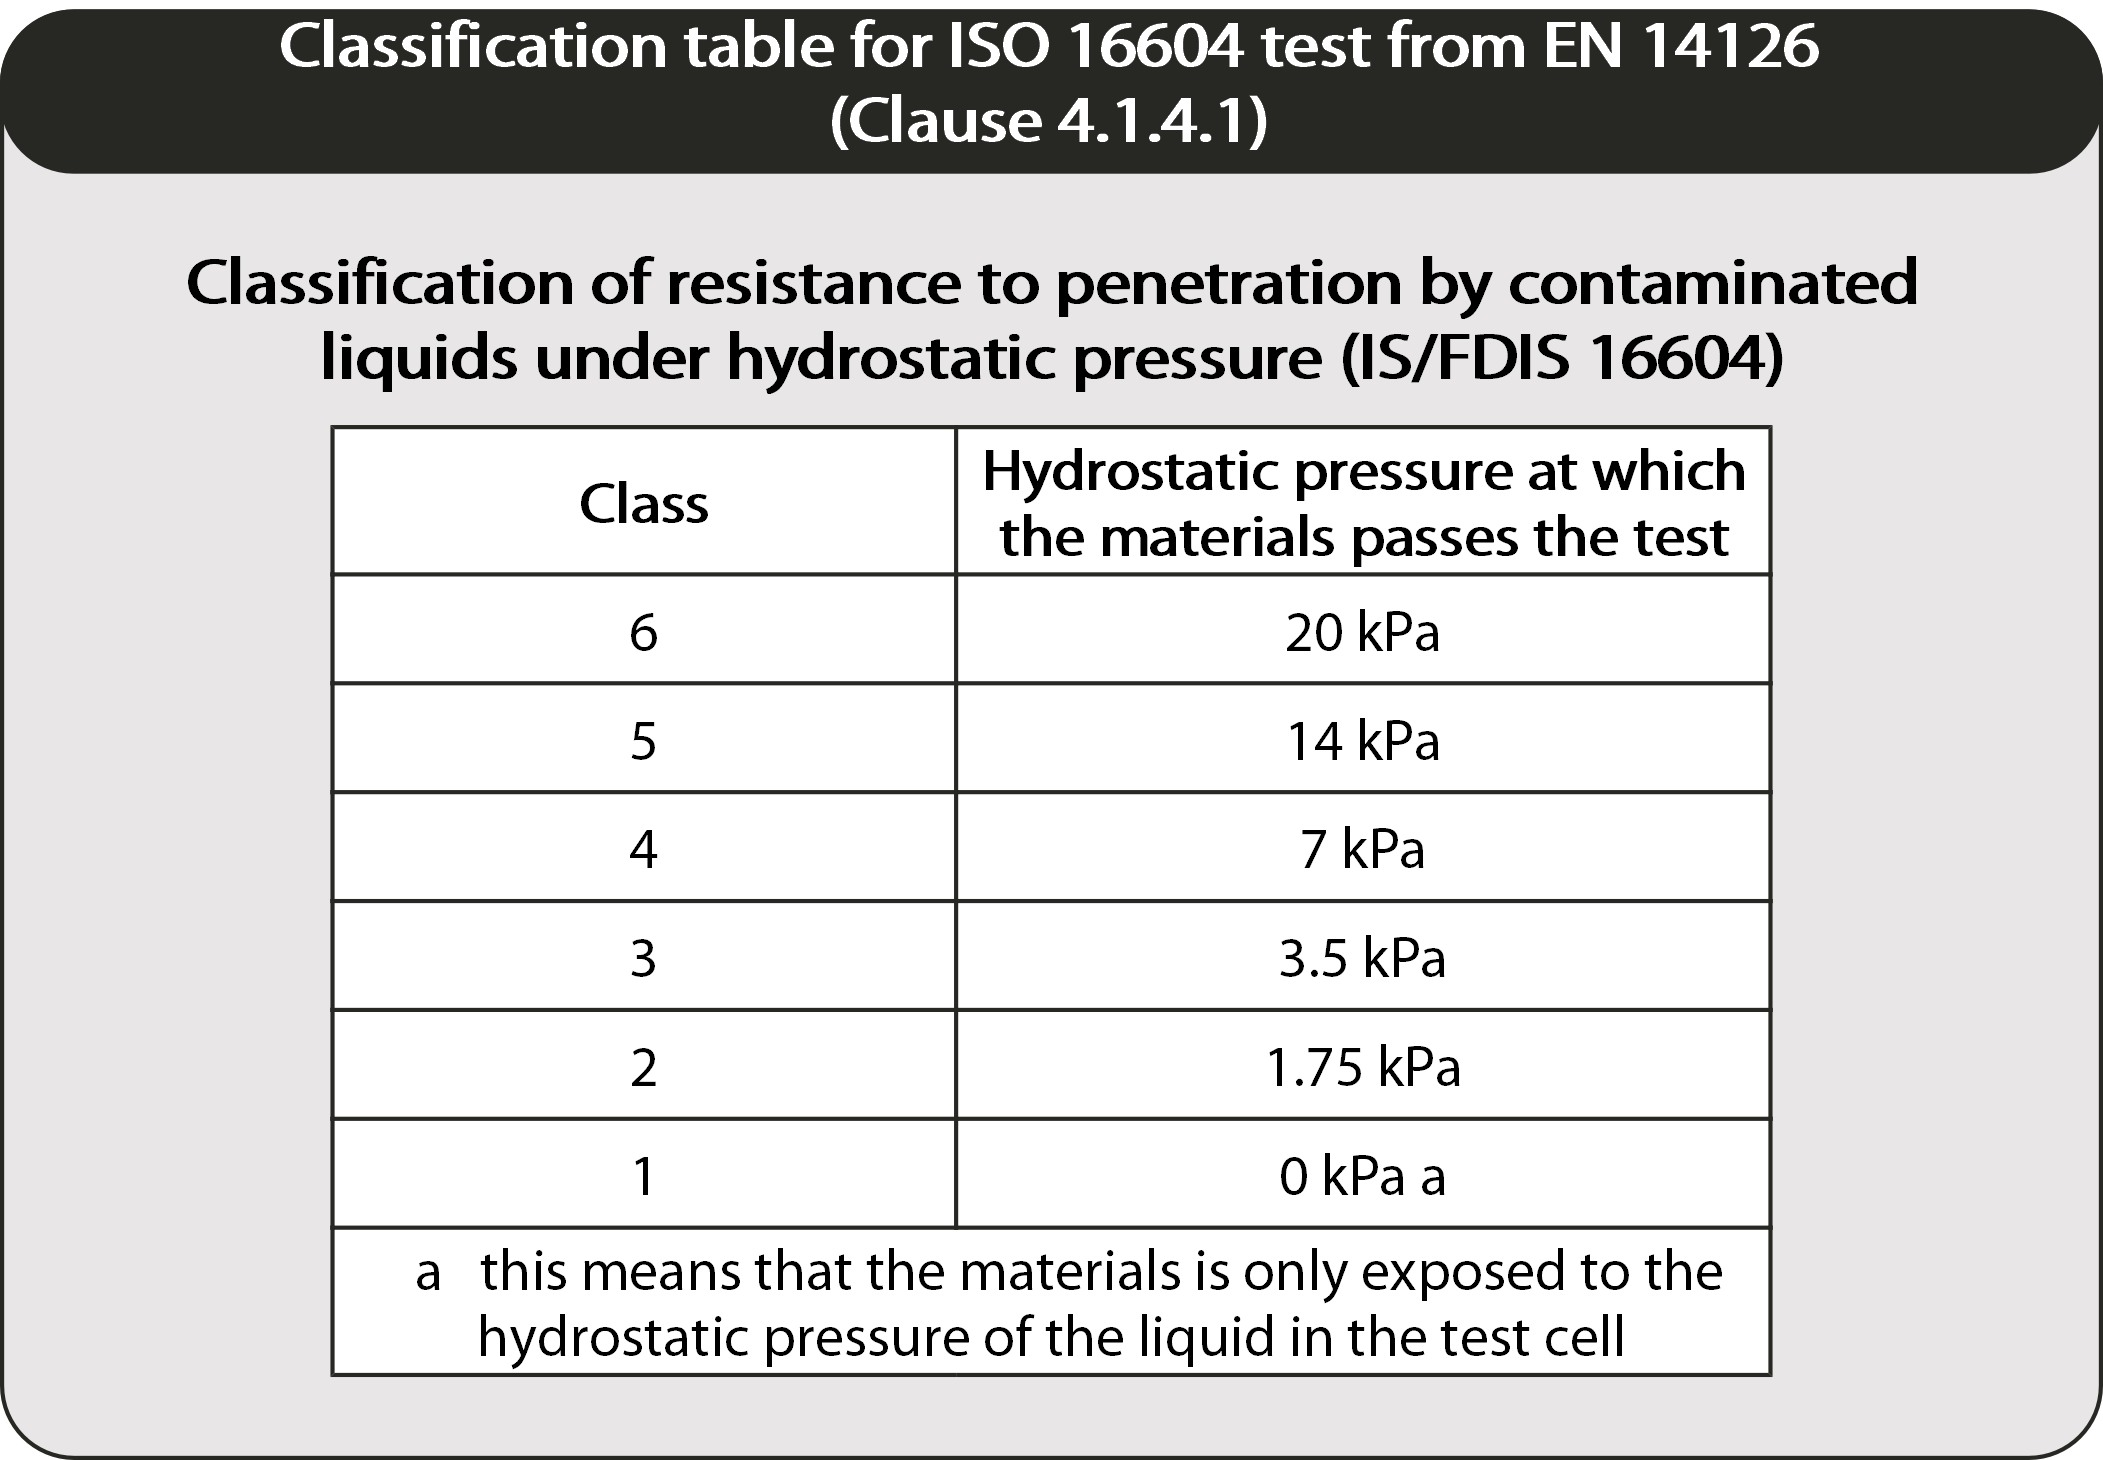 iso 16604 classification table image